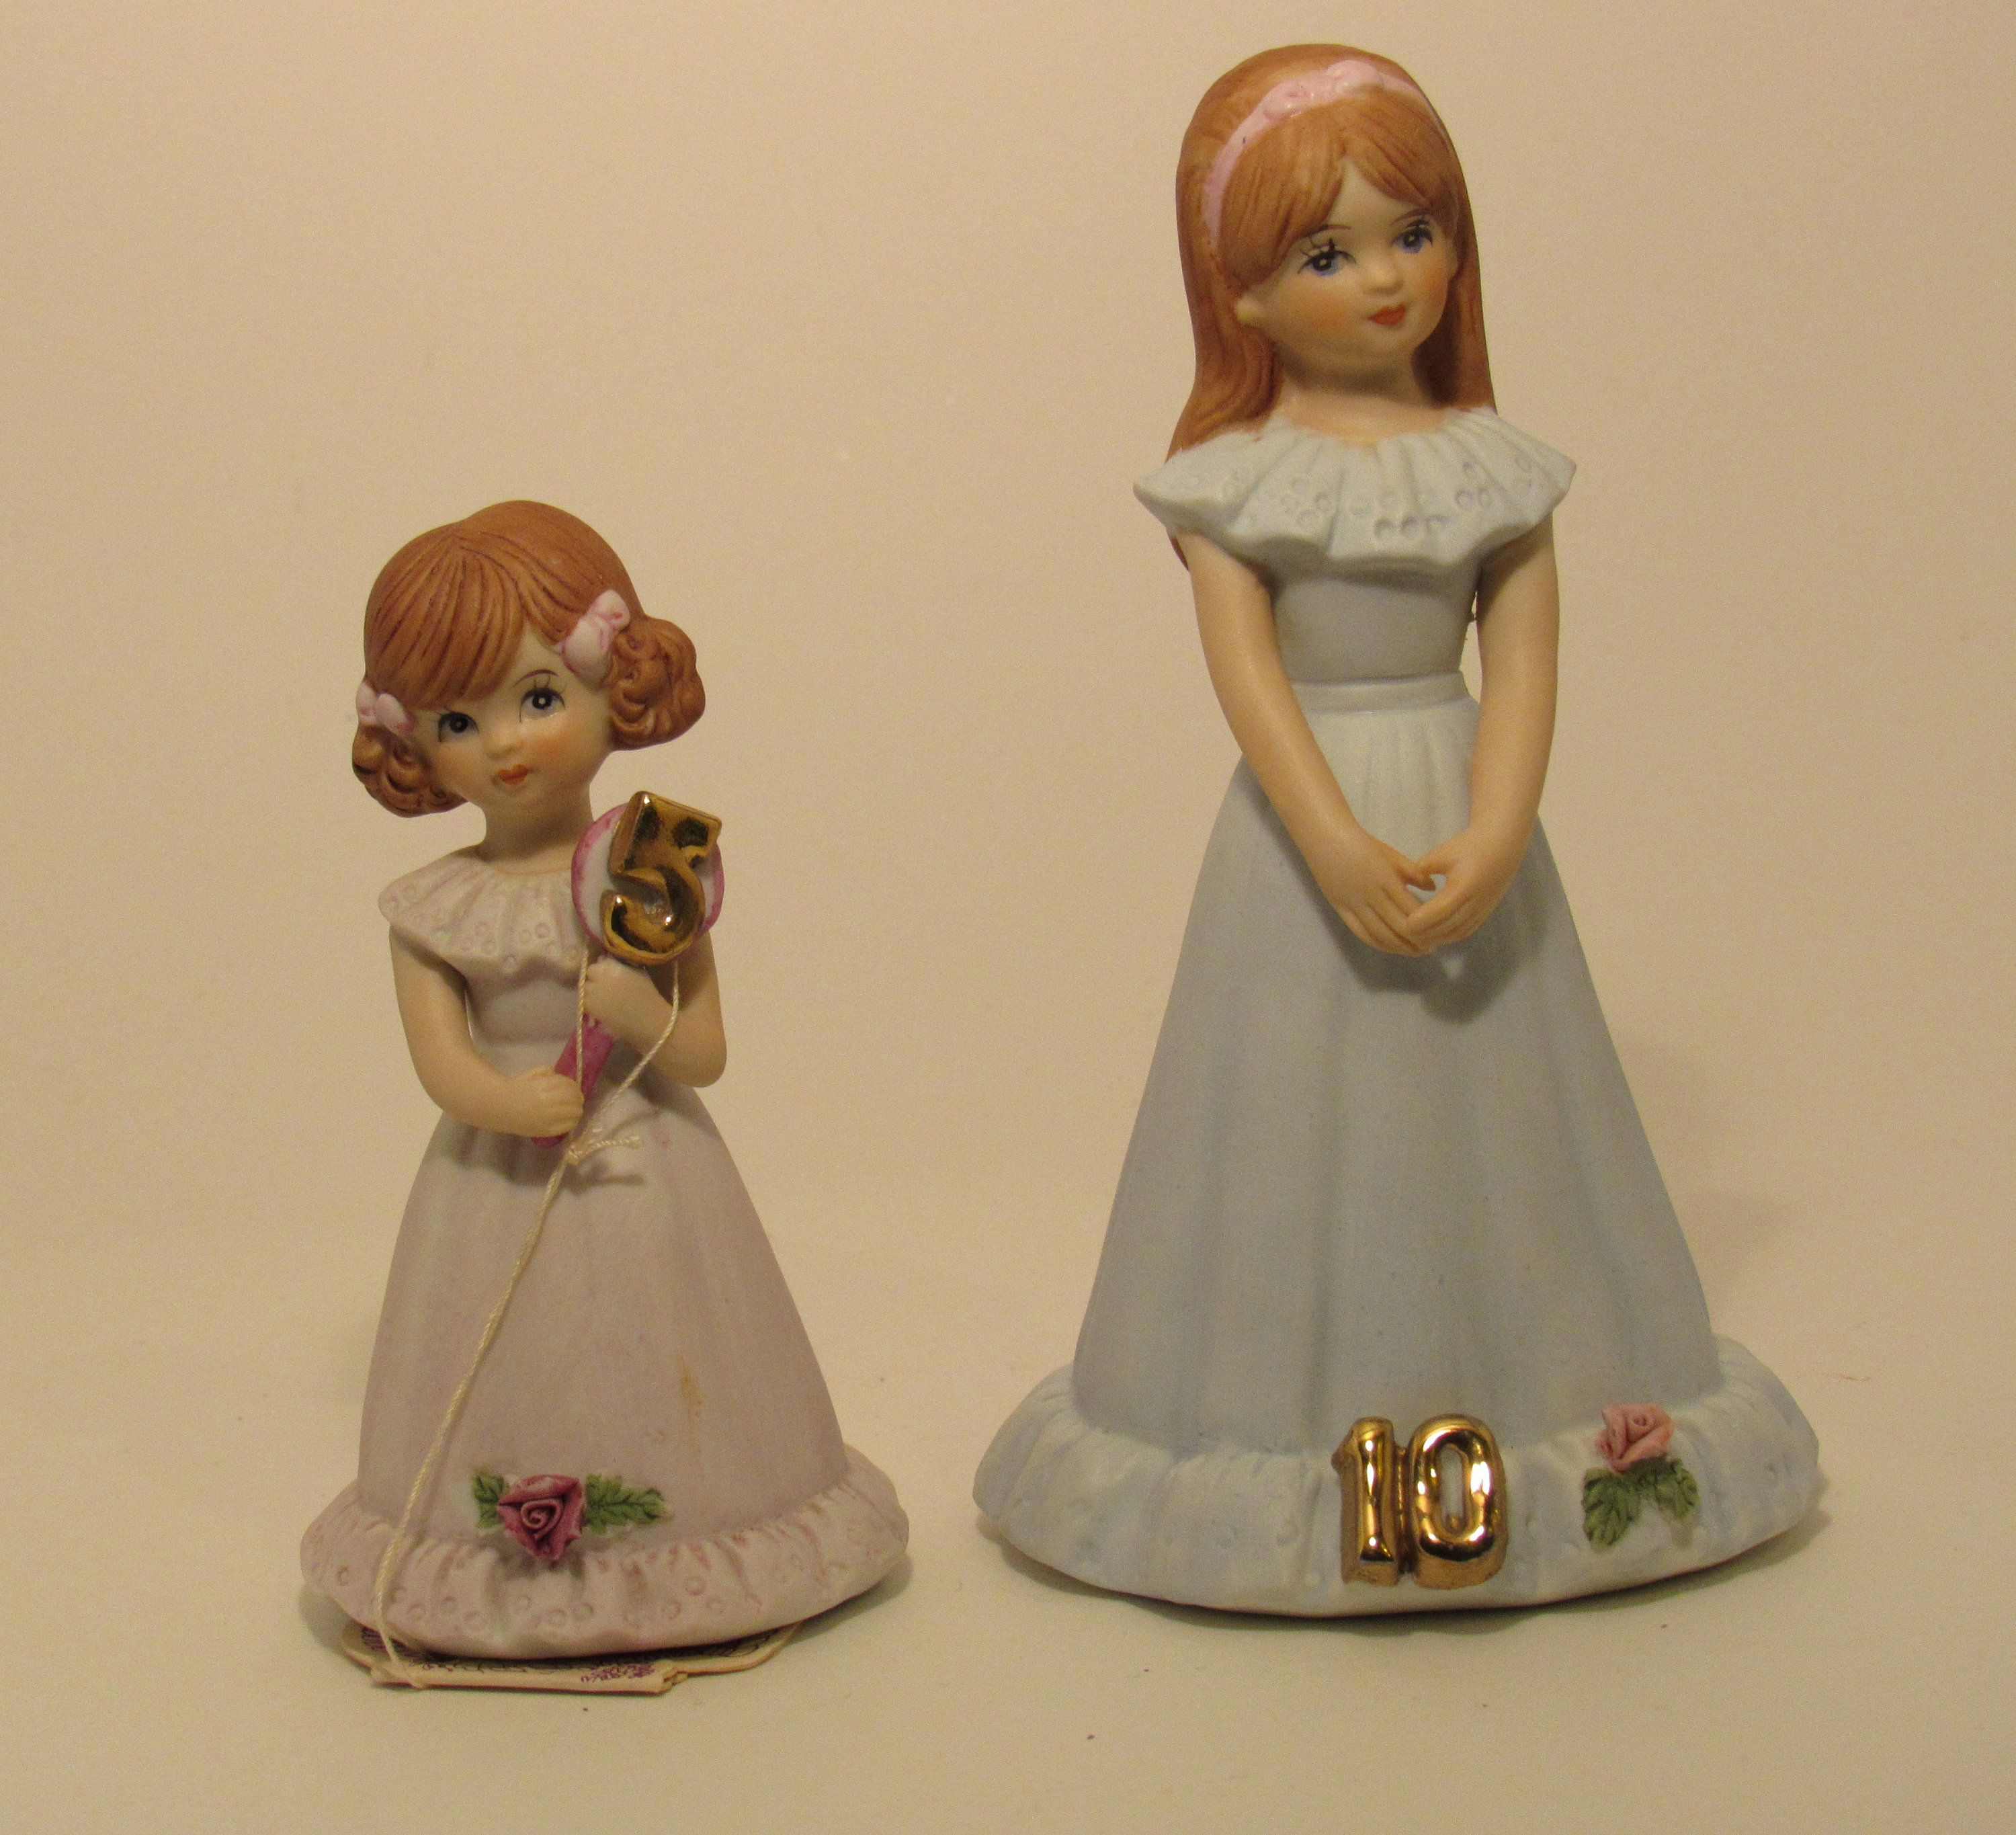 Growing Up Girls Old Face Paint Set of Two Ages 5 and 10 Enesco Birthday Dolls Brunettes #dollfacepainting